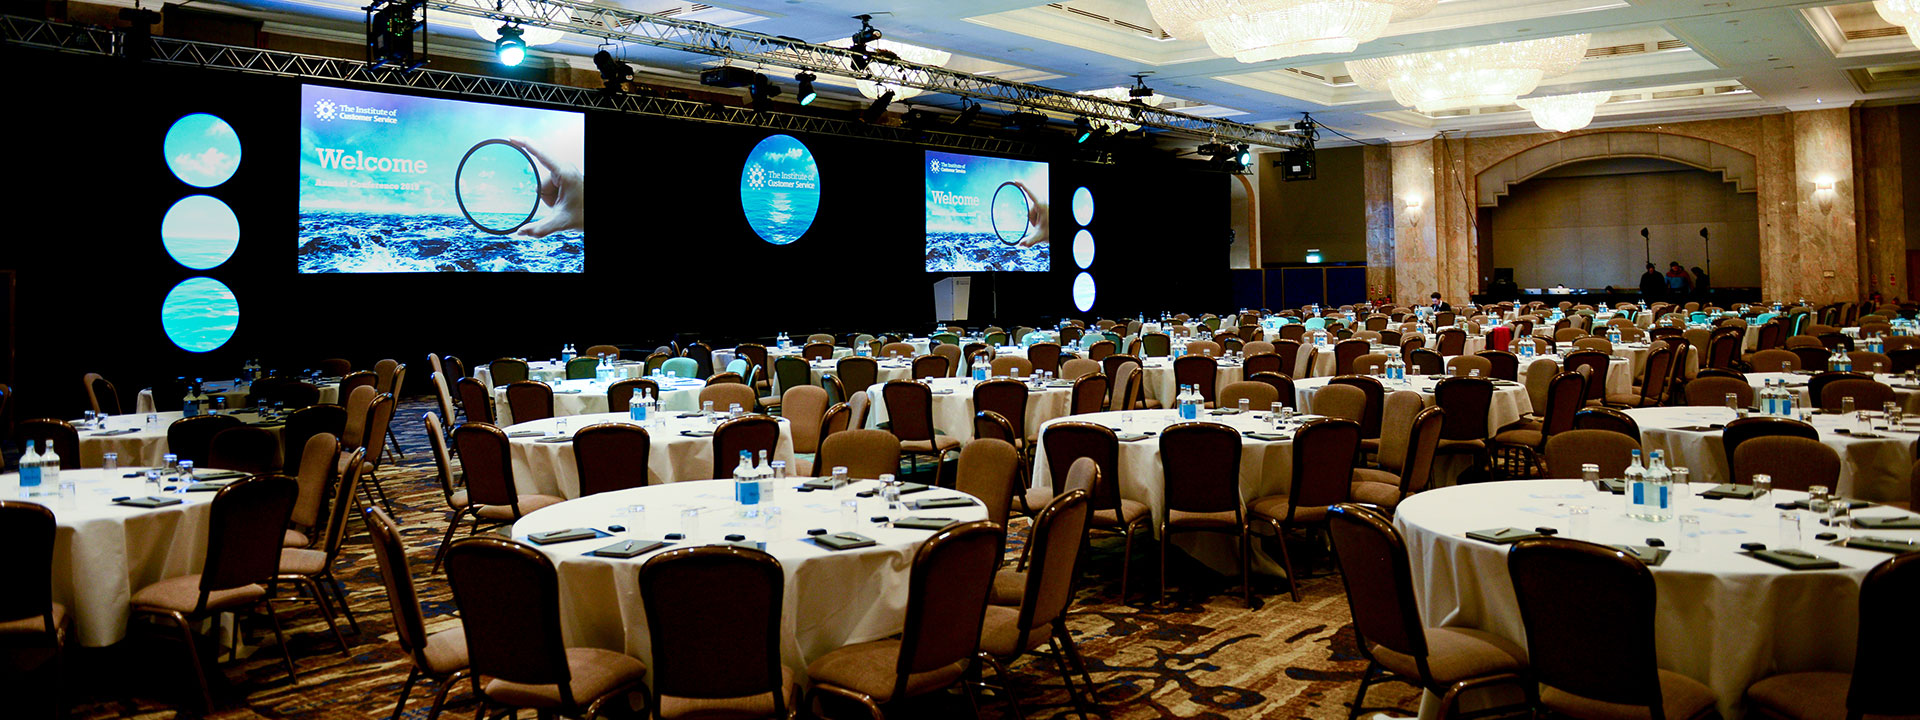 UK Customer Satisfaction Awards setup 2019